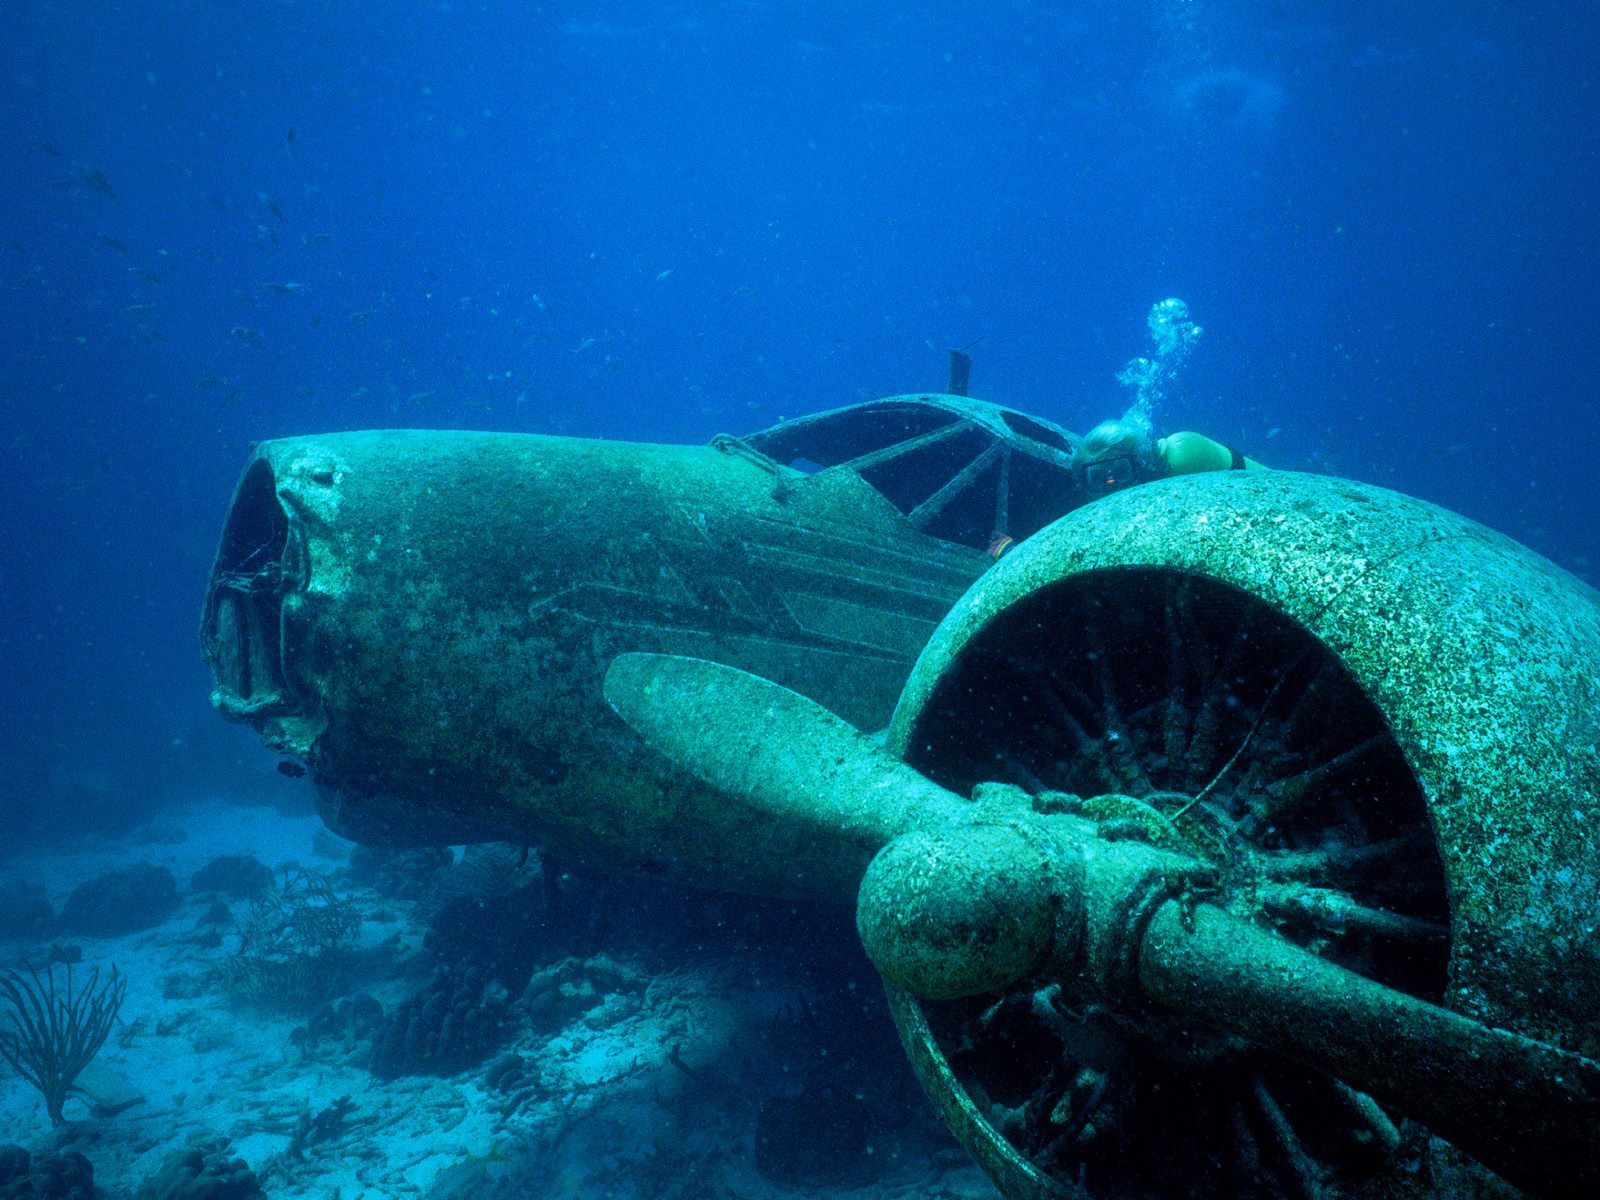 Sunken airplane and divers wallpaper - Aviation